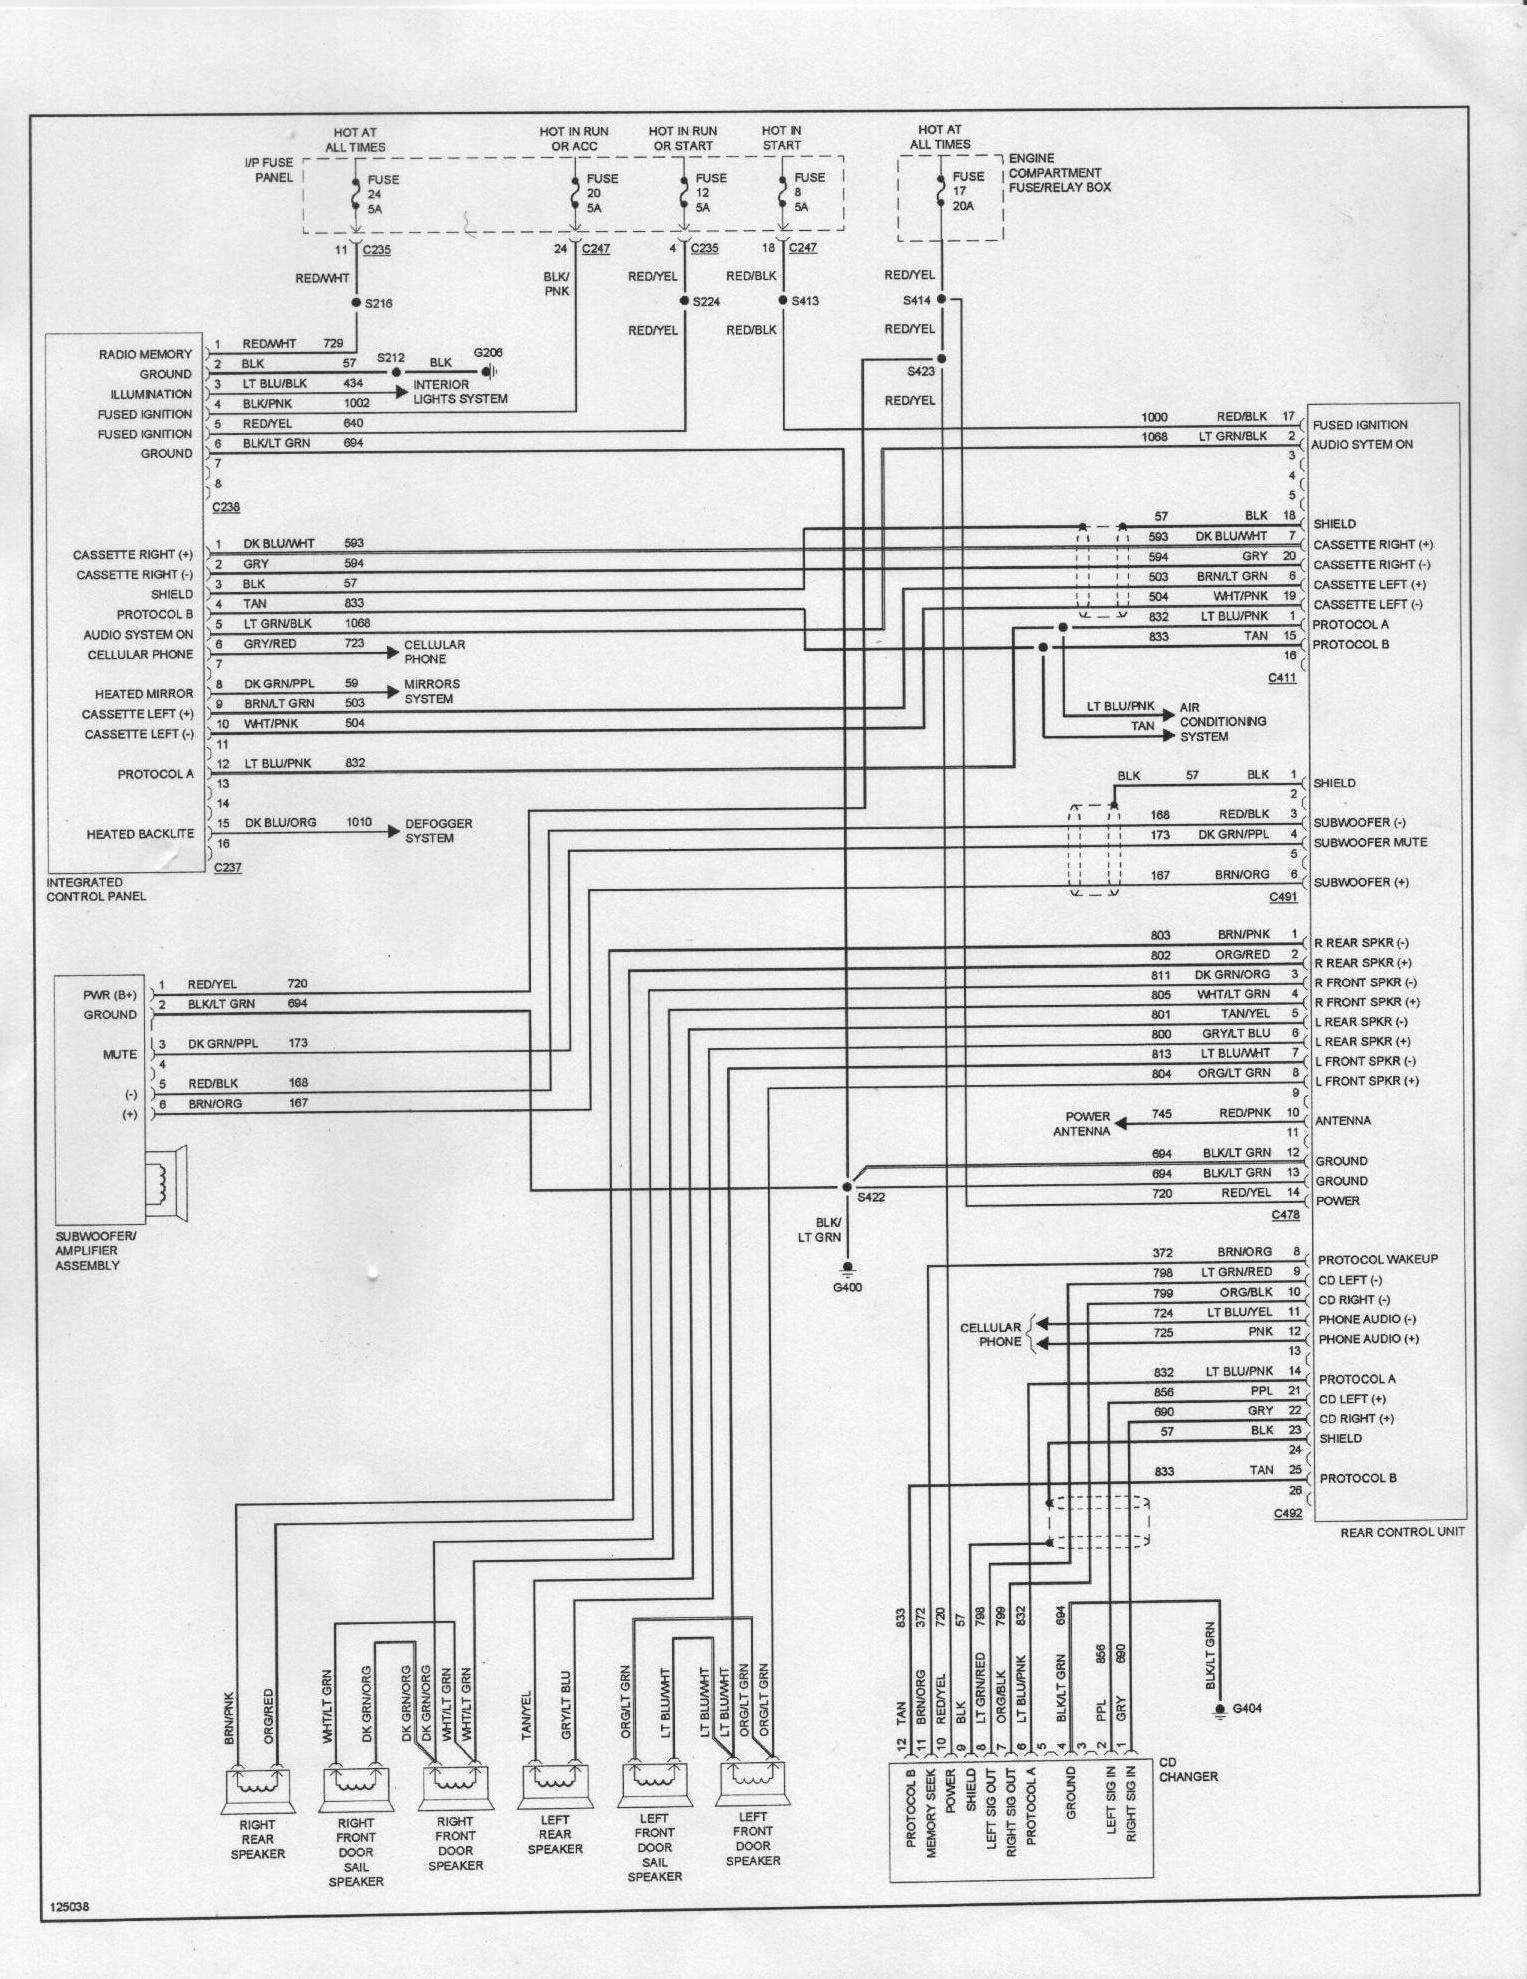 44917d1173064914 wiring diagram ford taurus diagram96 wiring diagram ford taurus taurus car club of america ford 2005 ford excursion wiring diagram at metegol.co